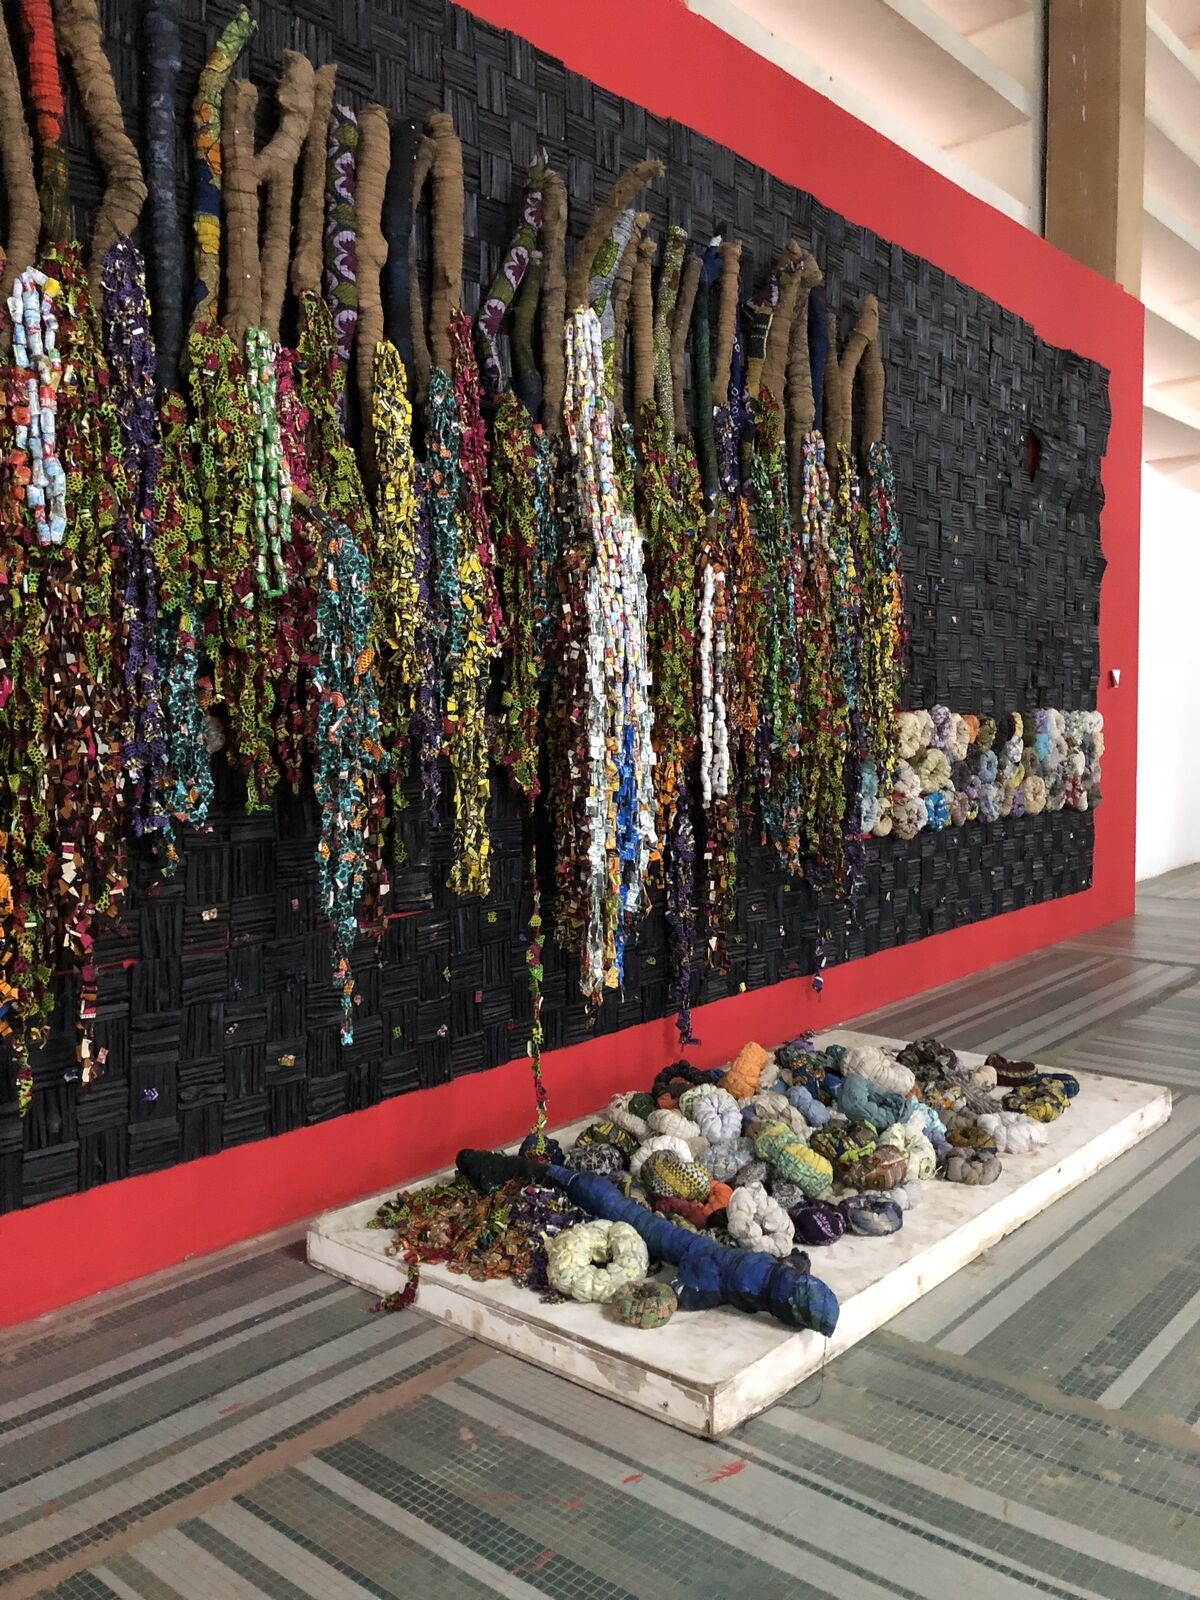 Installation view of work by Olanrewaju Tejuoso (Olan), Oldies and Goodies, 2017-18, at Dak'Art: African Contemporary Art Biennale, Dakar, 2018. Photo © Oumy Diaw.